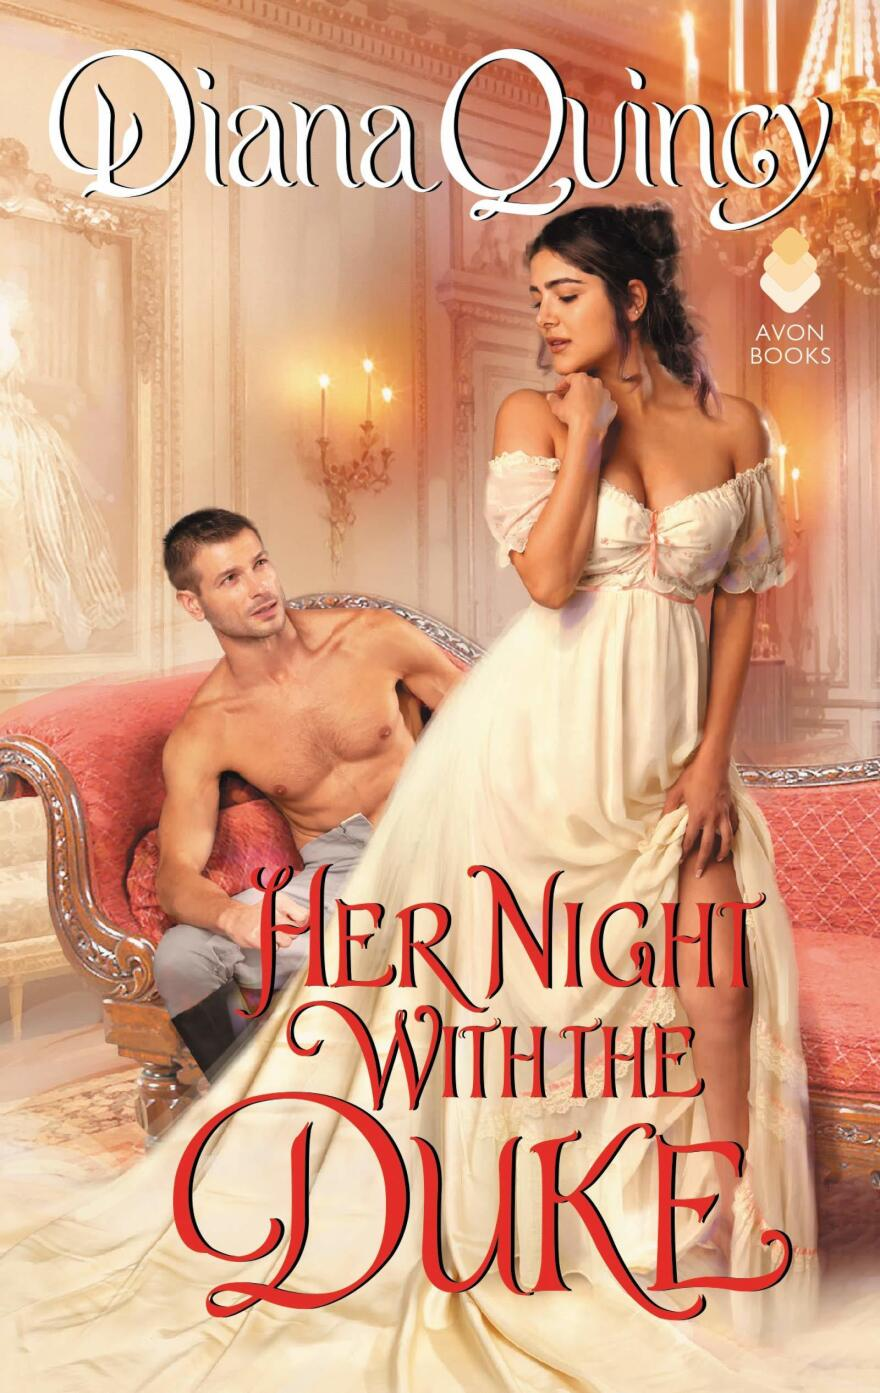 Her Night With the Duke, by Diana Quincy